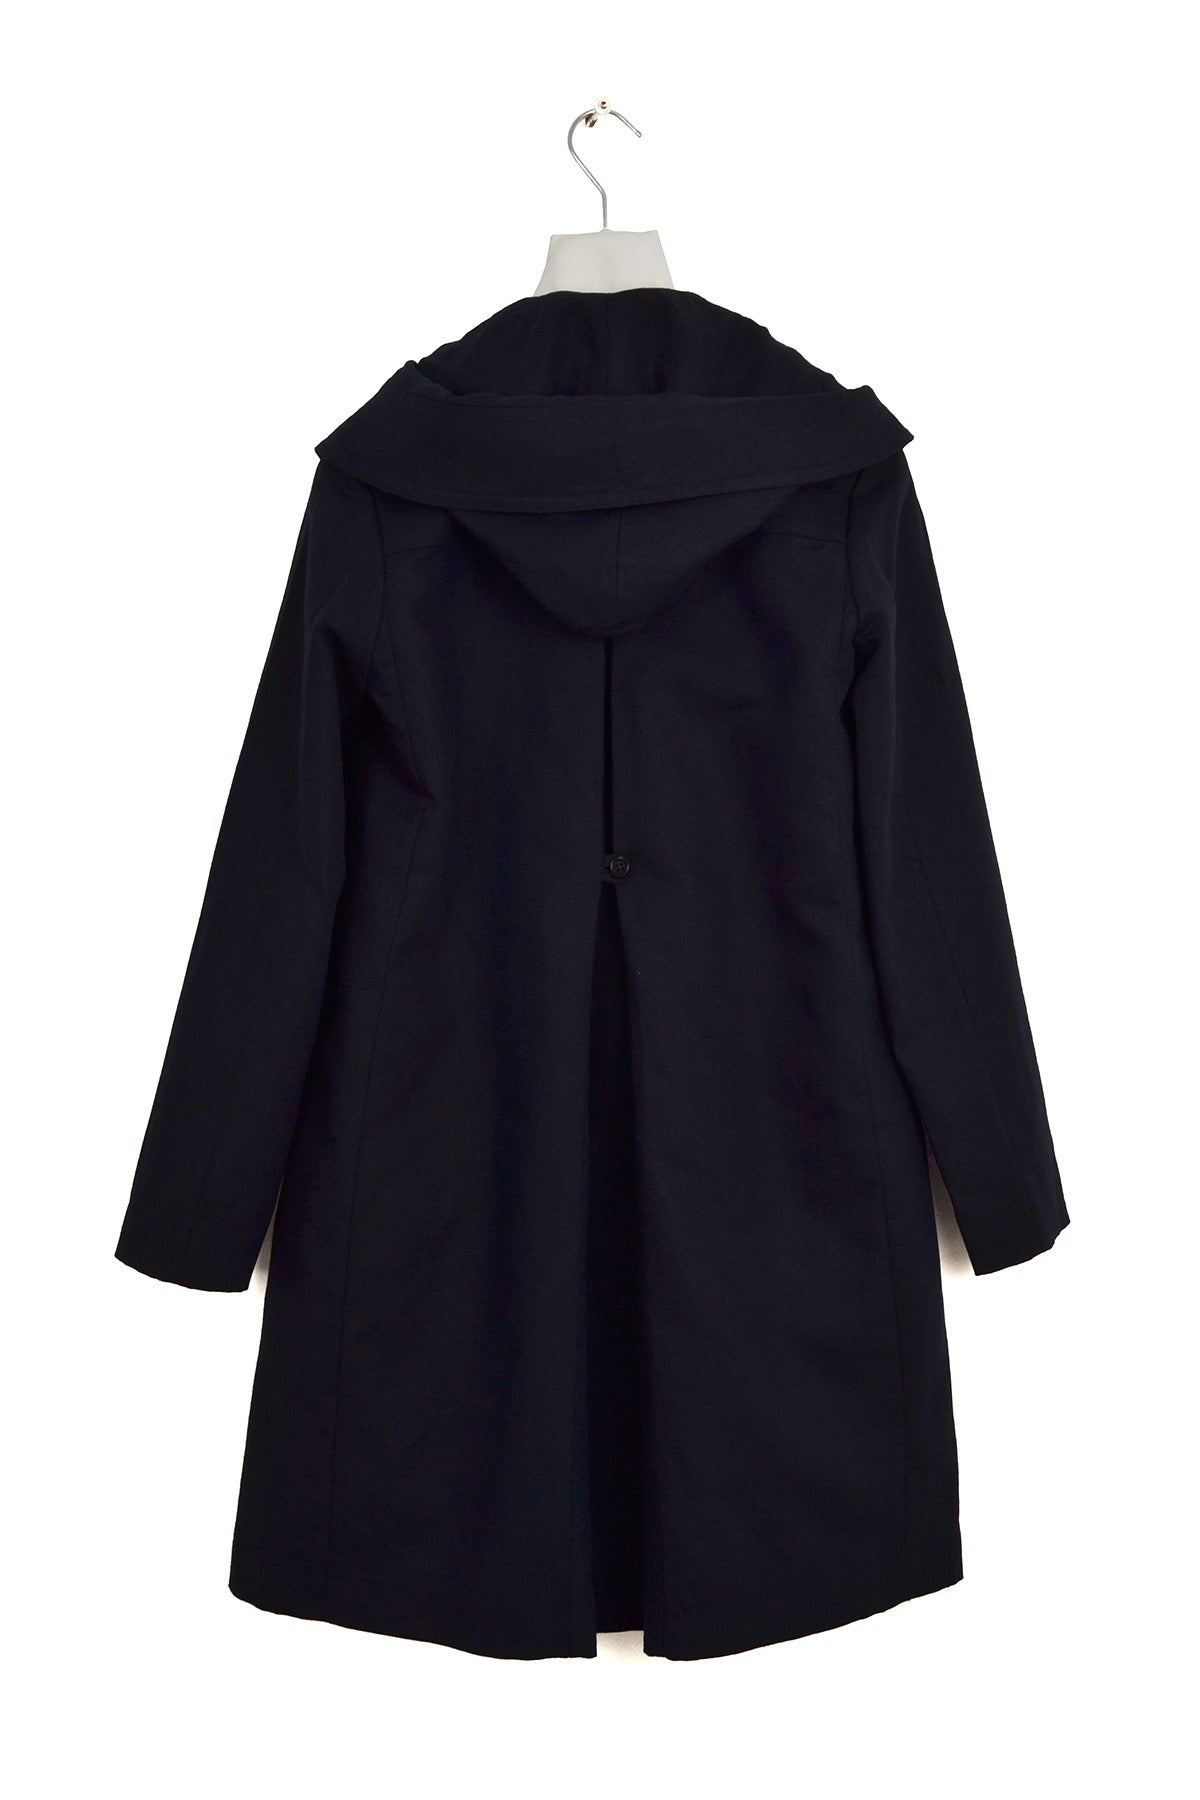 2012 S/S COTTON AND LINEN CANVAS HOODED COAT